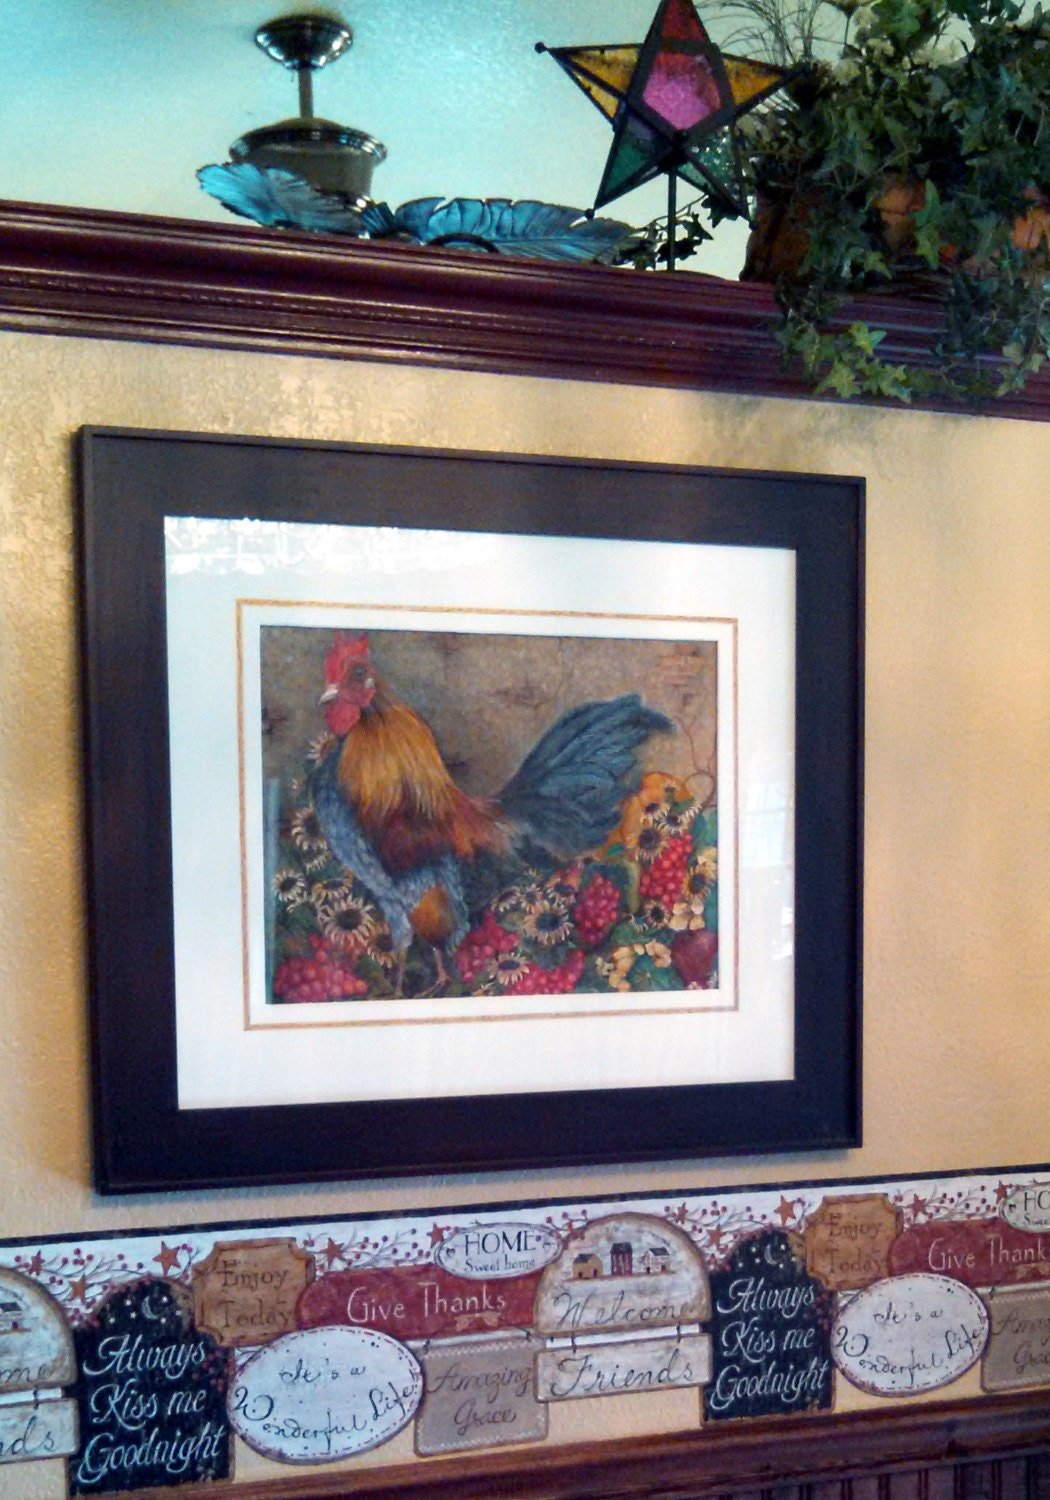 Country Rooster Prints Dining Room Decor Fine Art Chicken Prints Kitchen  Decor Farmhouse Chic Sunflowers Grapes Fall Prints Blue Red Yellow